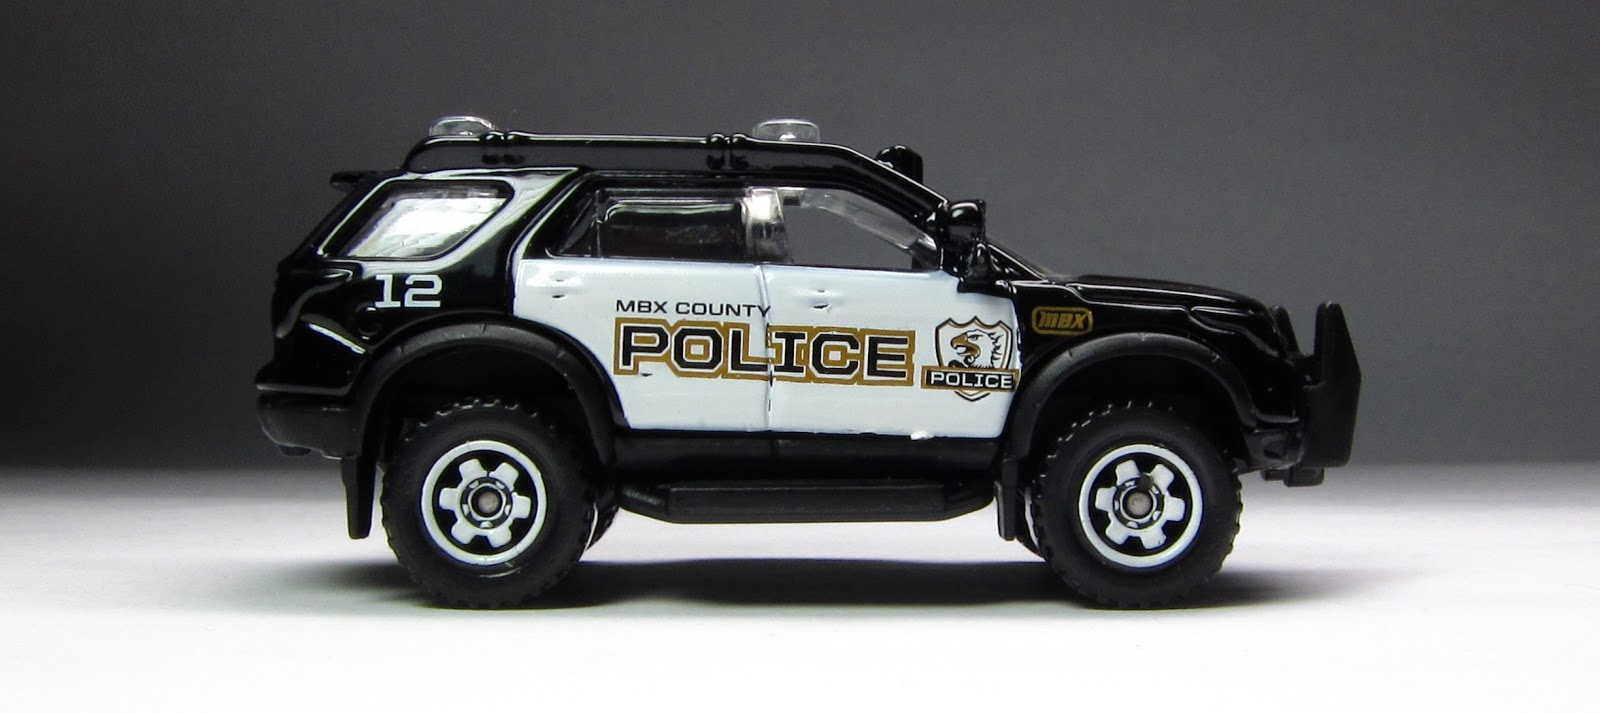 The Last Golden Age Of Matchbox Black Amp White Police Cars Autocar Regeneration